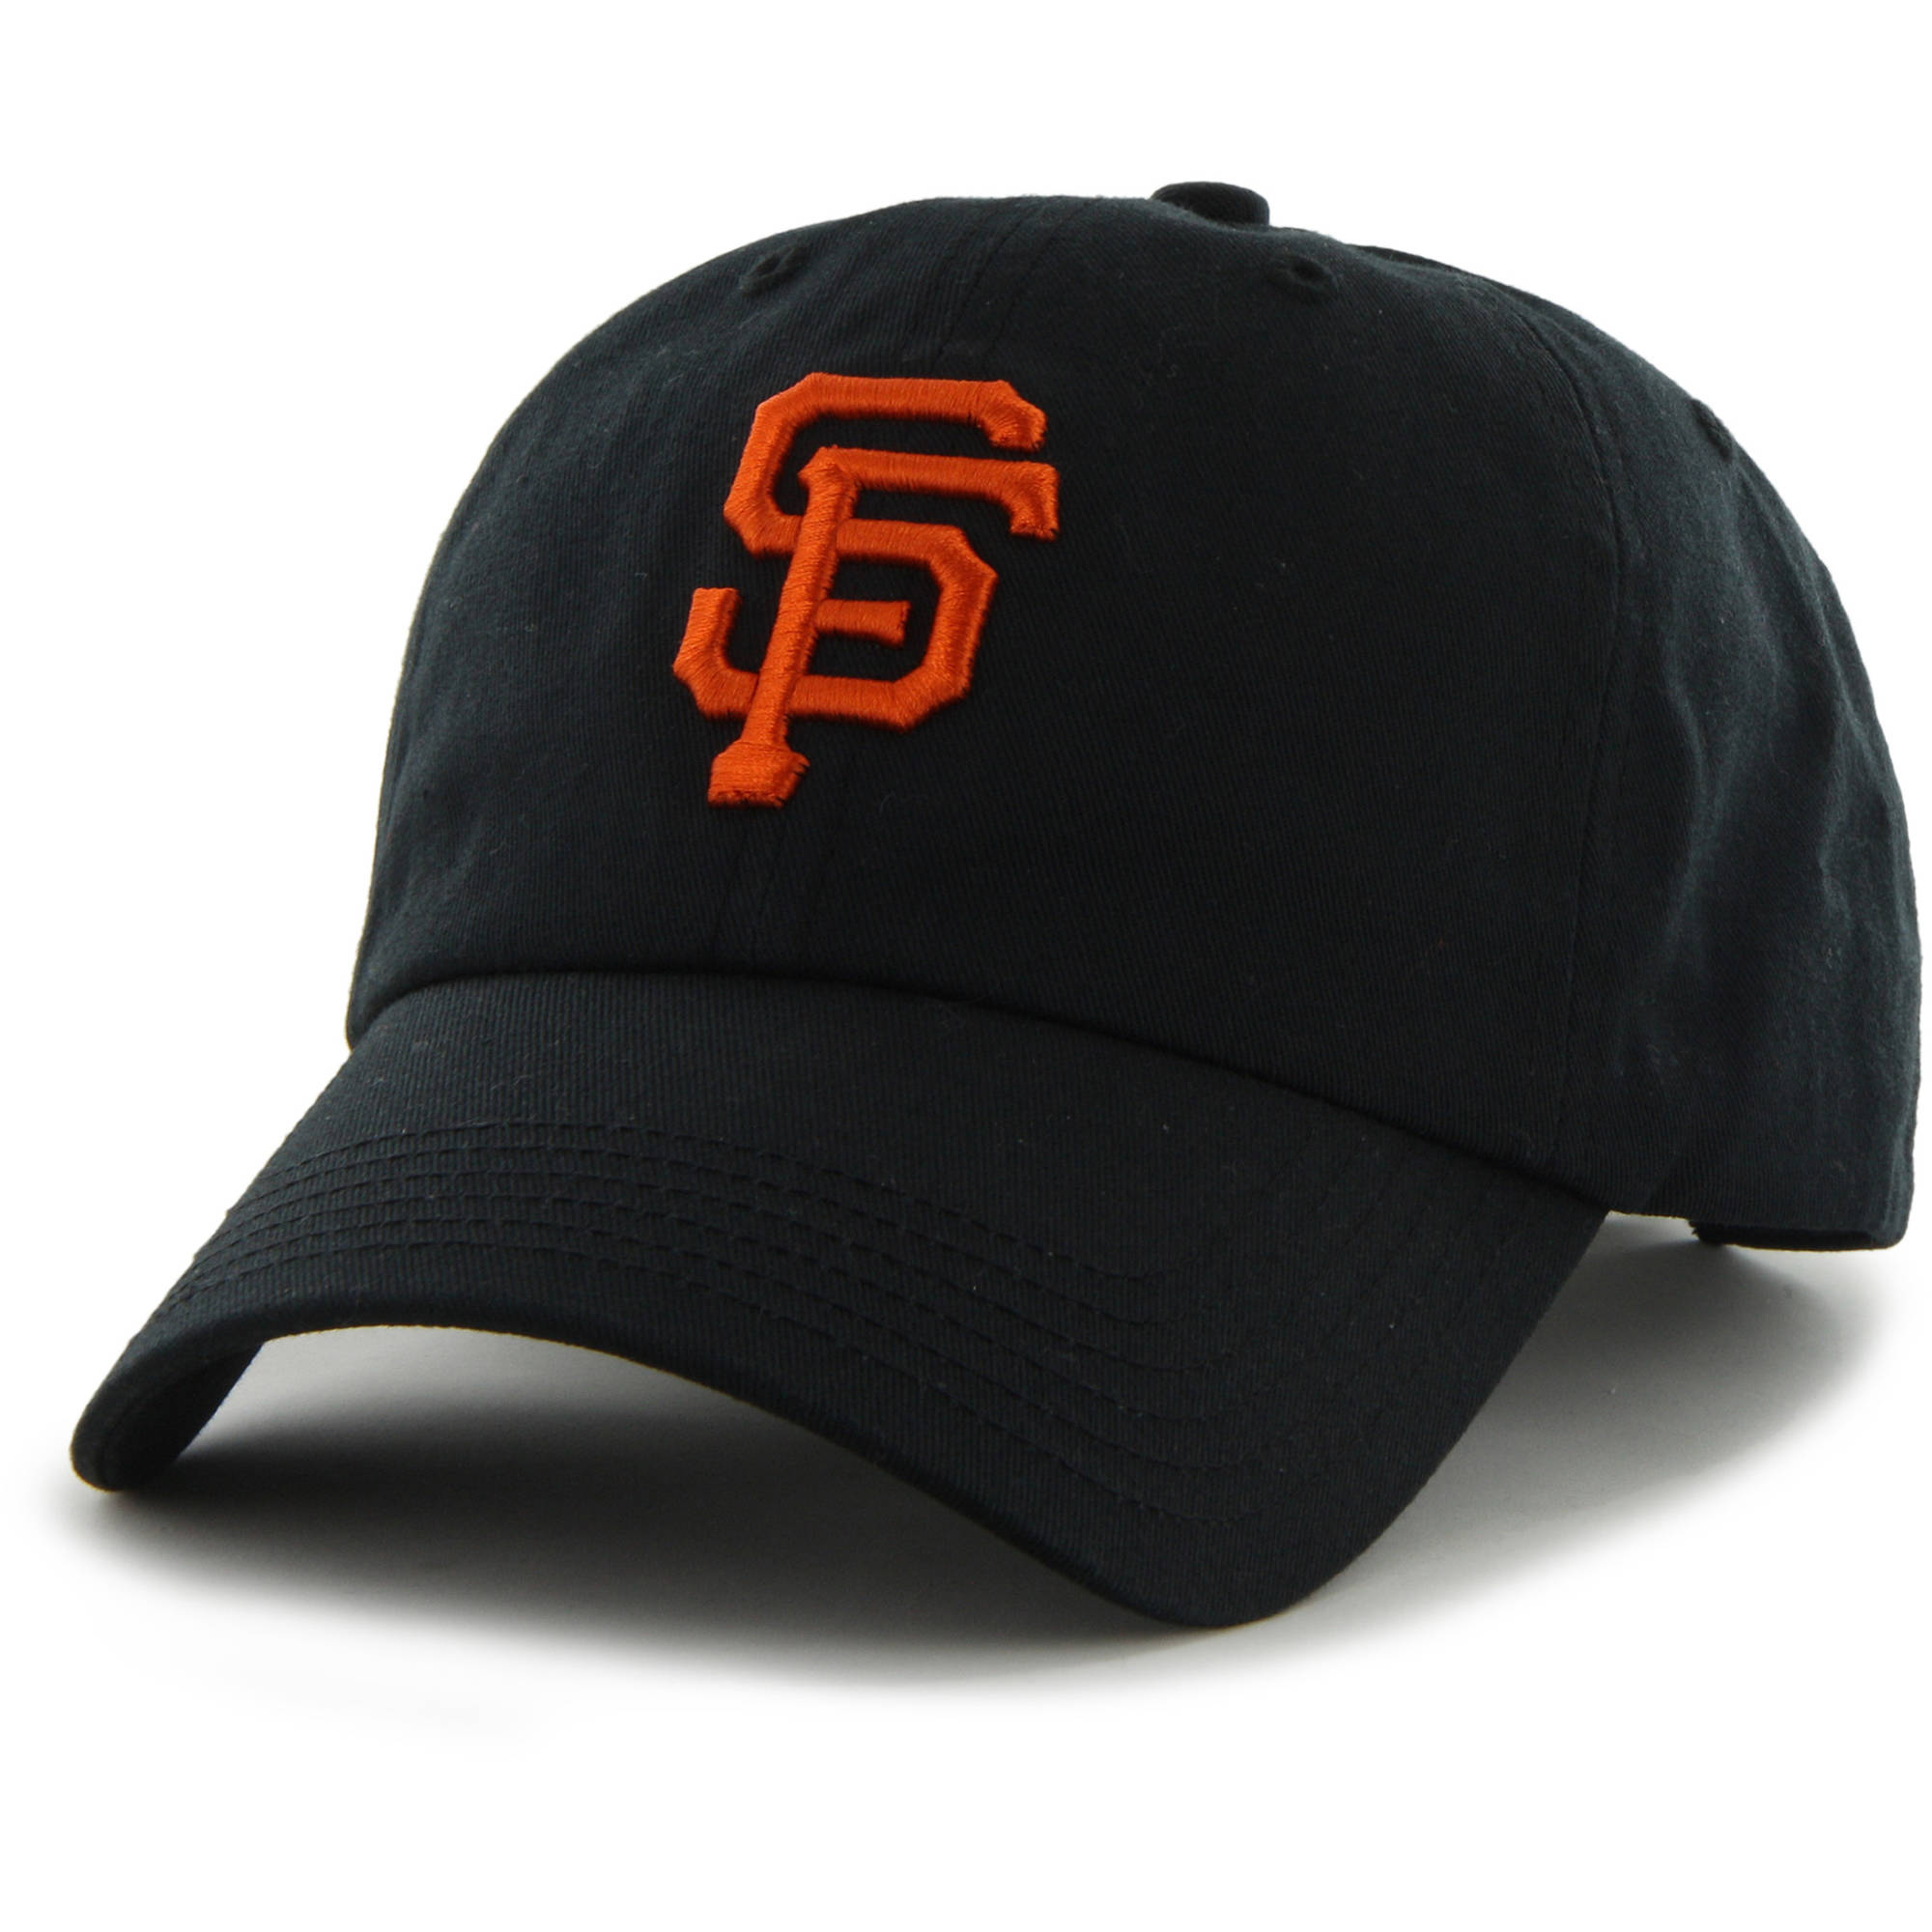 MLB San Francisco Giants Clean Up Cap / Hat by Fan Favorite